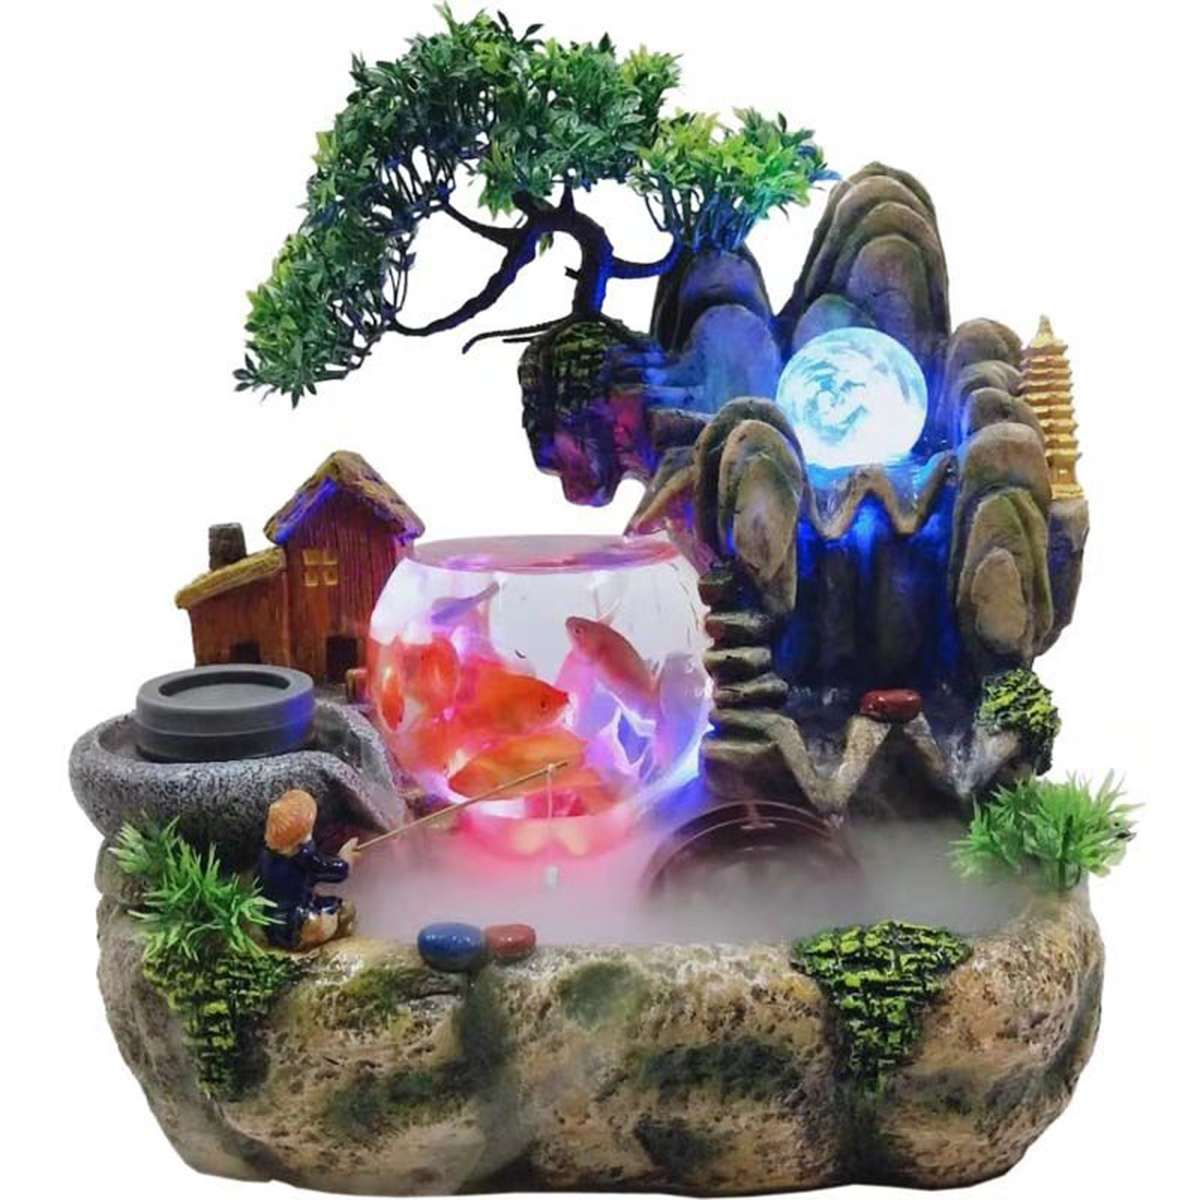 220V Creative Indoor Simulation LED Resin Rockery Waterscape Nebulizer Feng Shui <font><b>Water</b></font> <font><b>Fountain</b></font> <font><b>Home</b></font> Office Humid <font><b>Decor</b></font> Craft image